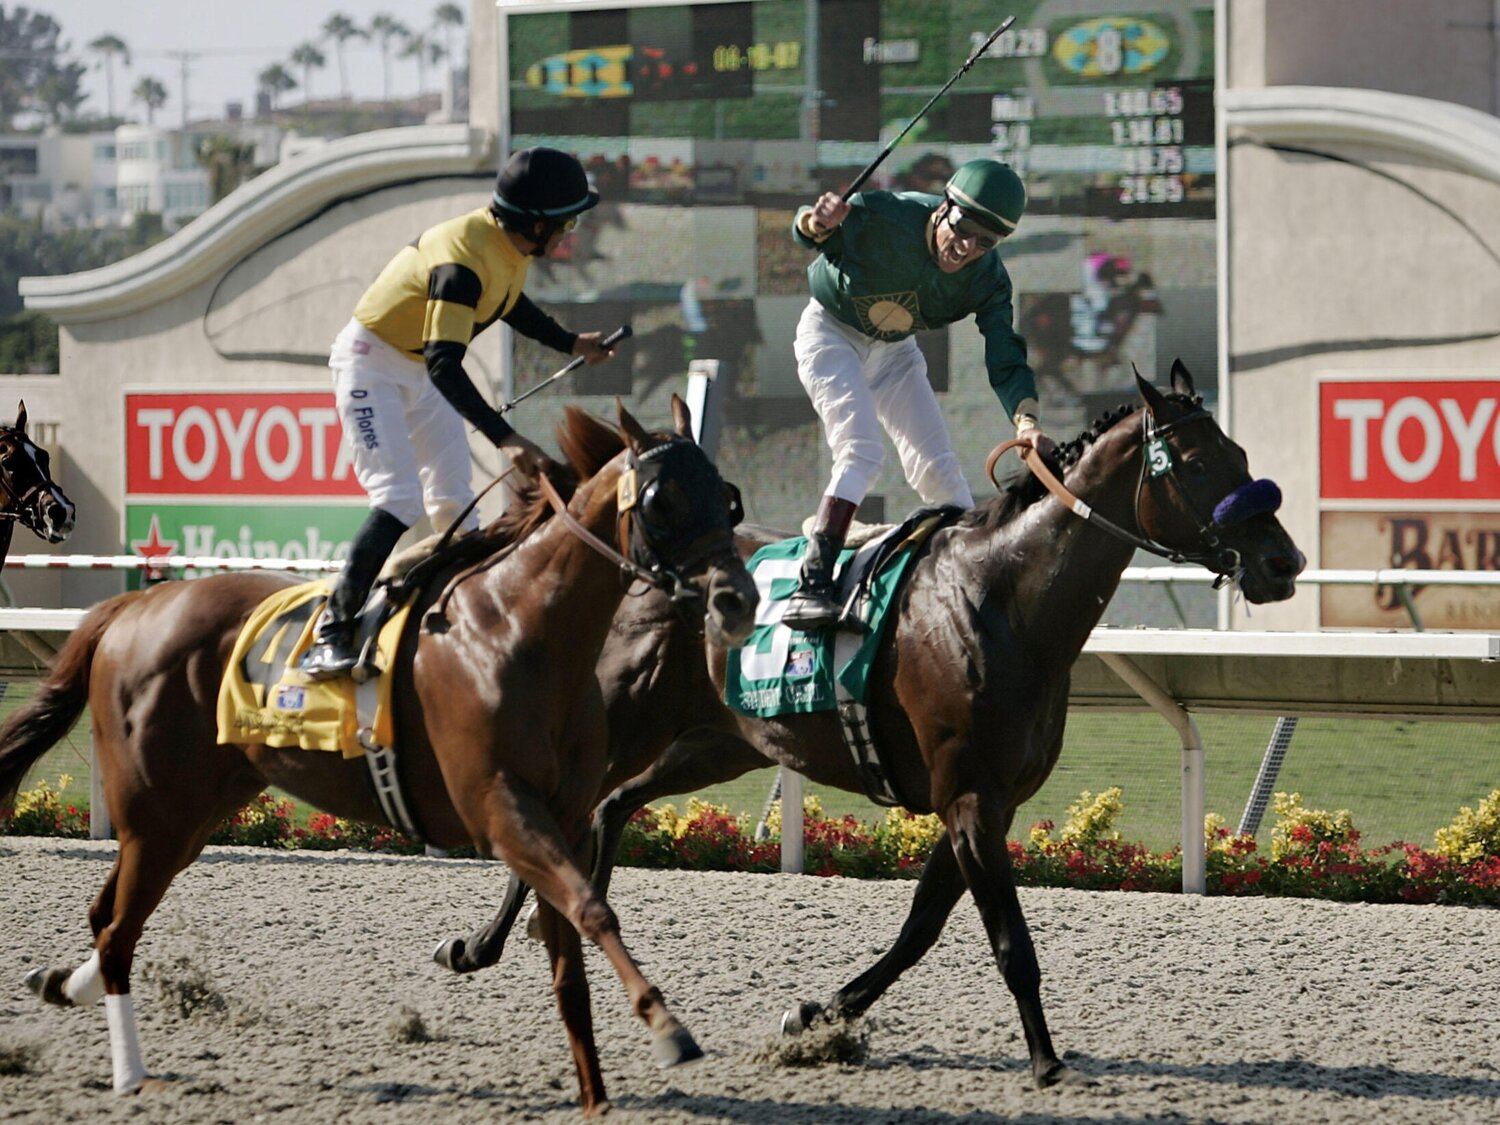 Richard winning the G1 Pacific Classic at Del Mar aboard Student Council.